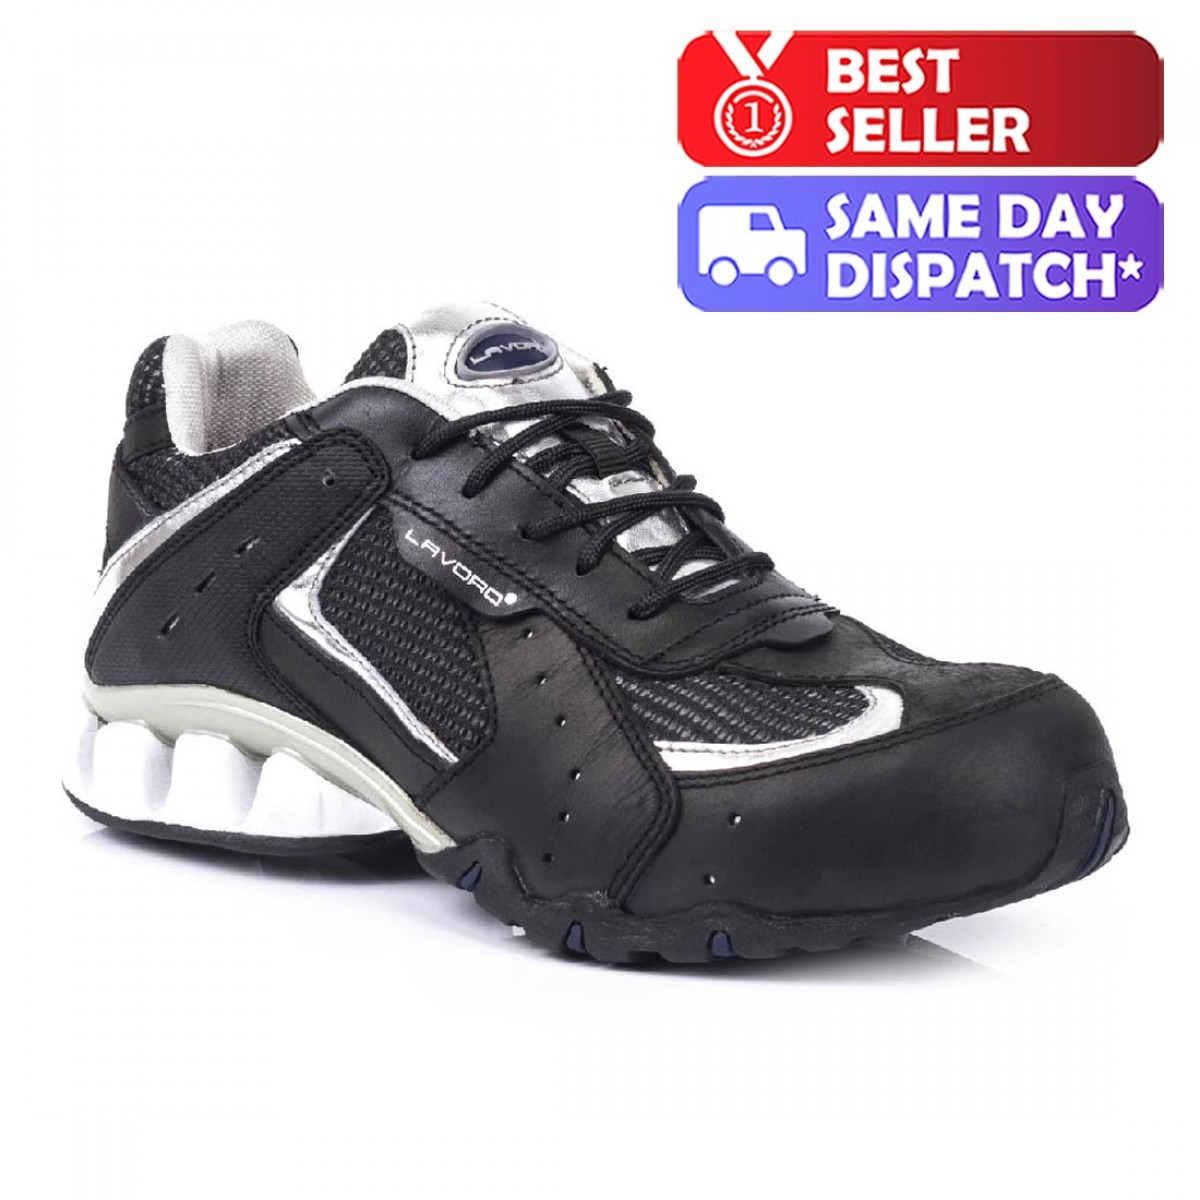 10eb4ebfa18 Lavoro Run Silver Unisex Lightweight Steel Toe Cap Safety Trainers